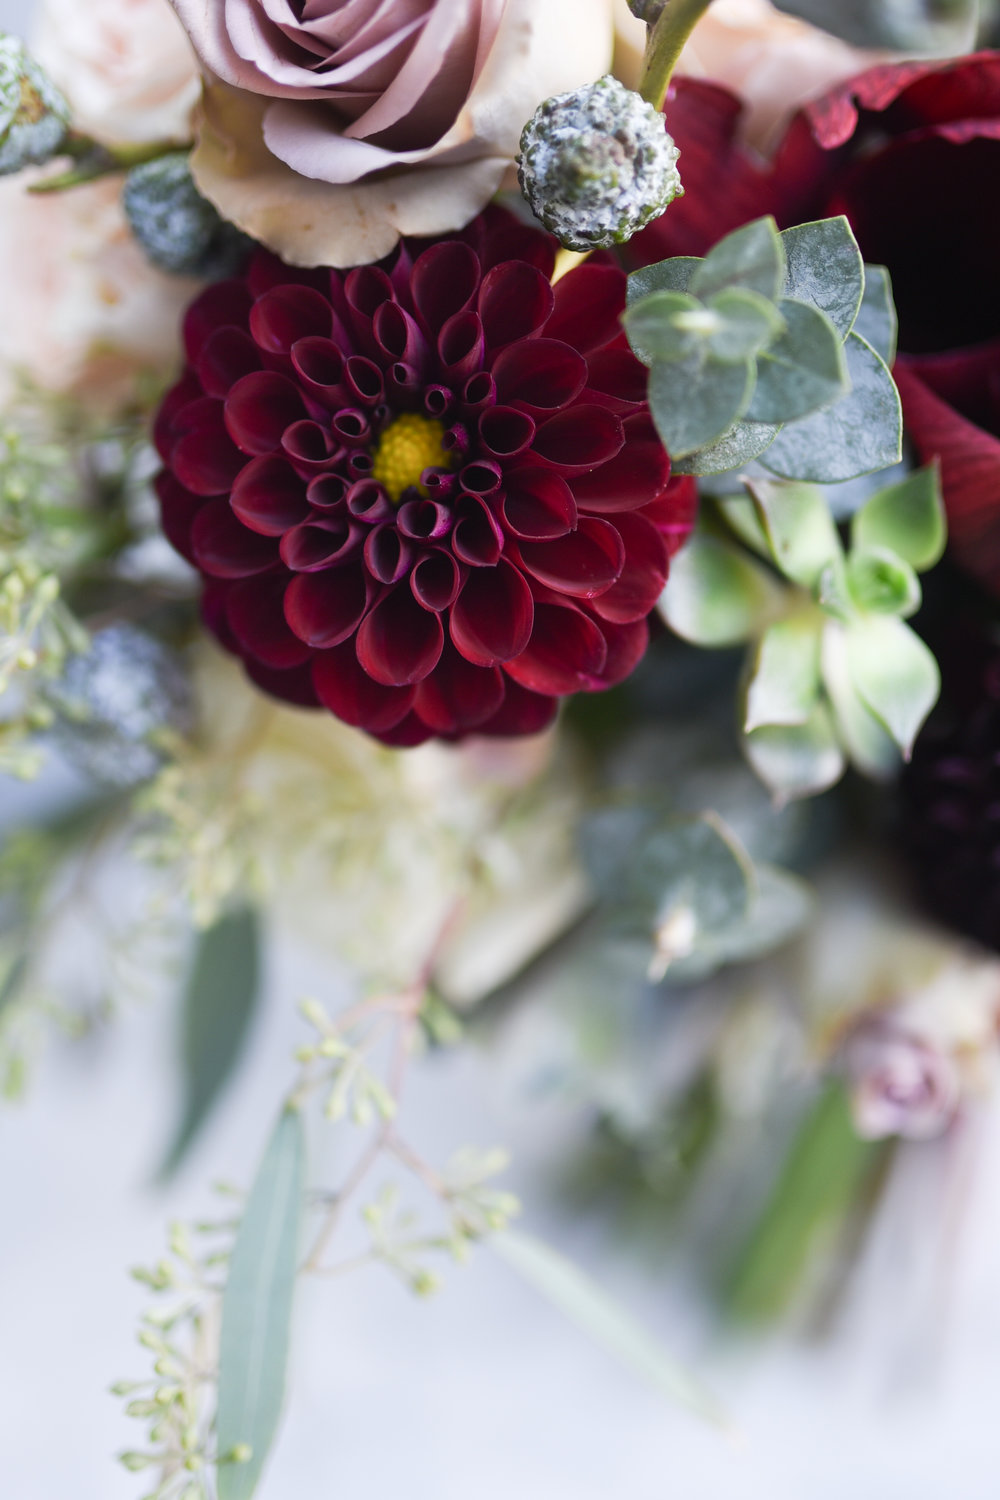 Seasonal dahlias are dark and lovely